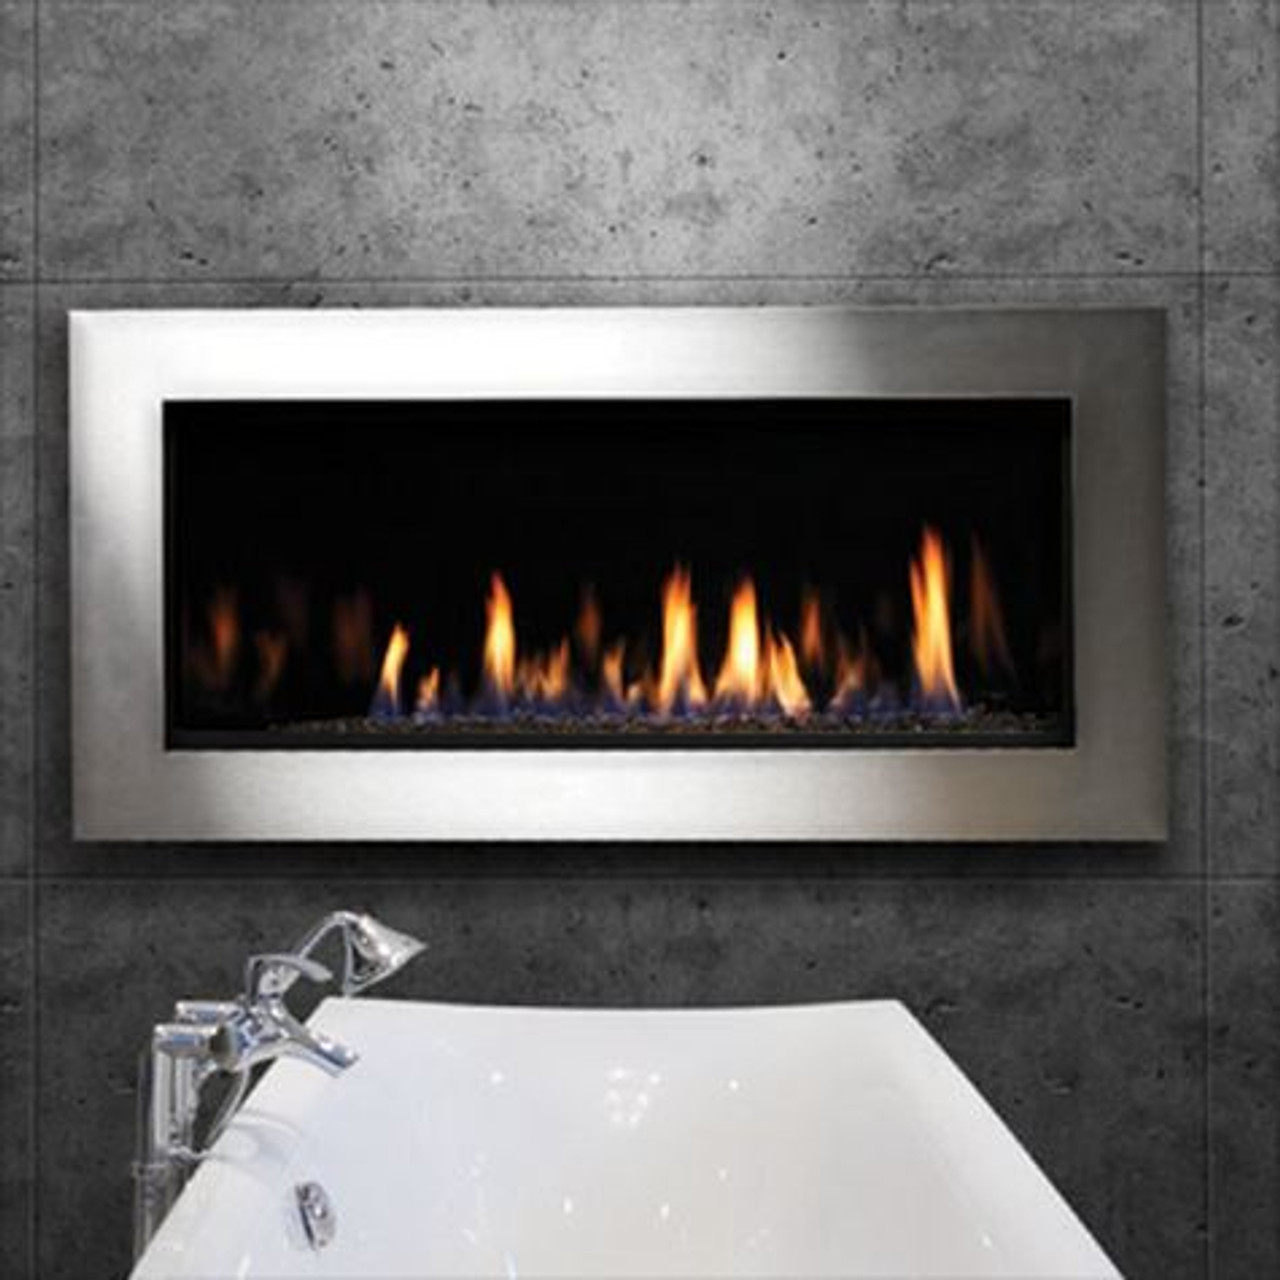 Gas Fireplace Pilot Light Out Kingsman Gas Fireplace Pilot Light Thundergroupuk Co